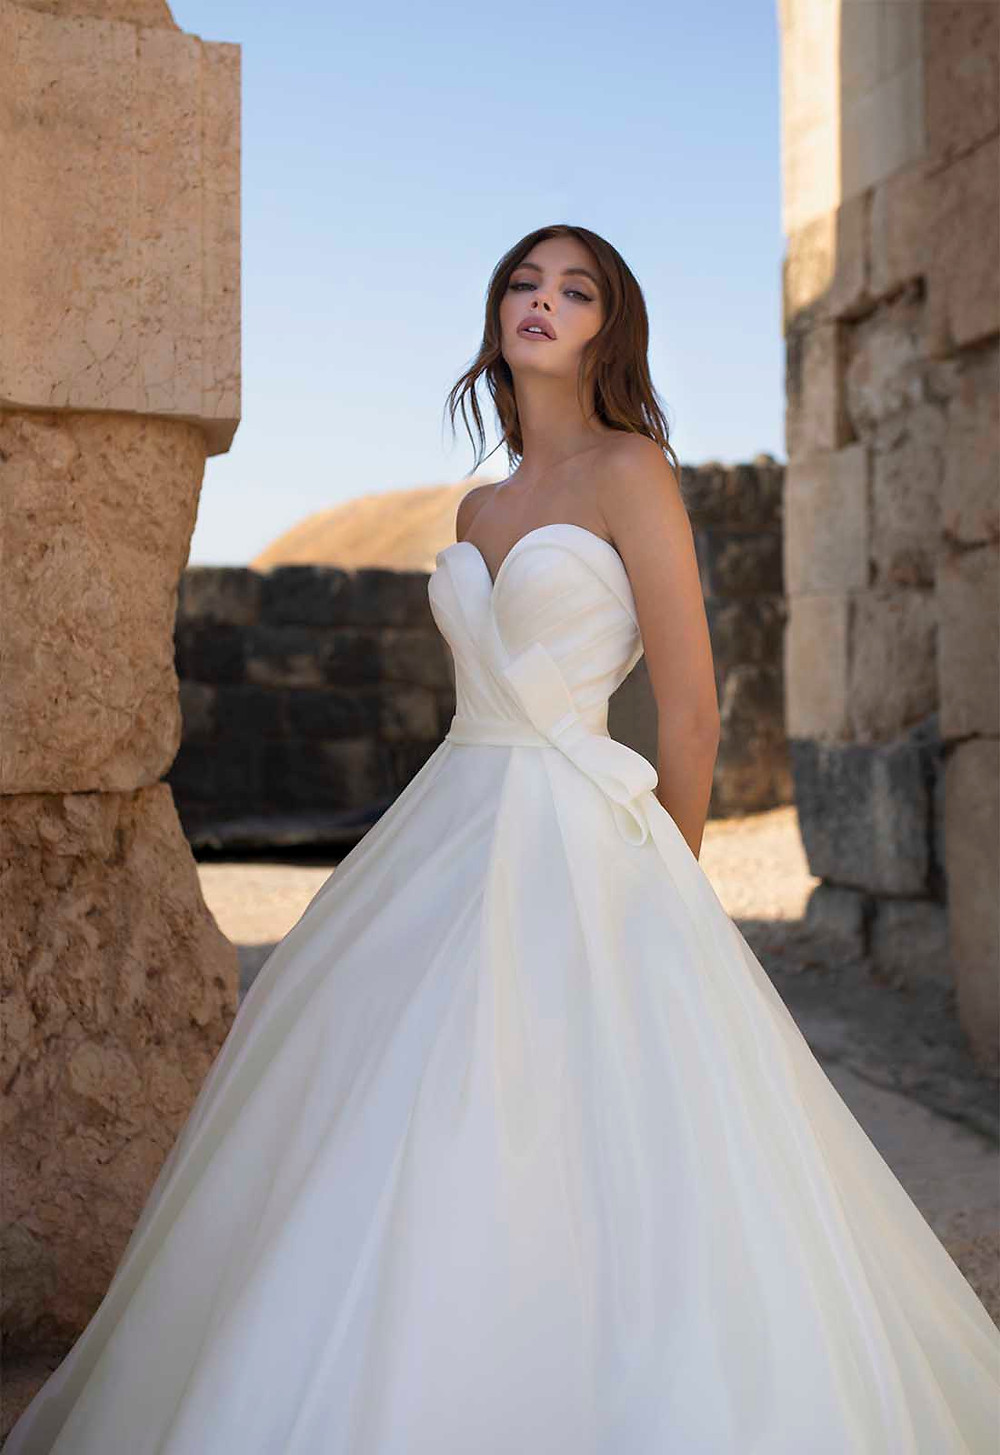 A Pnina Tornai strapless tulle ball gown wedding dress with a sweetheart neckline and a bow